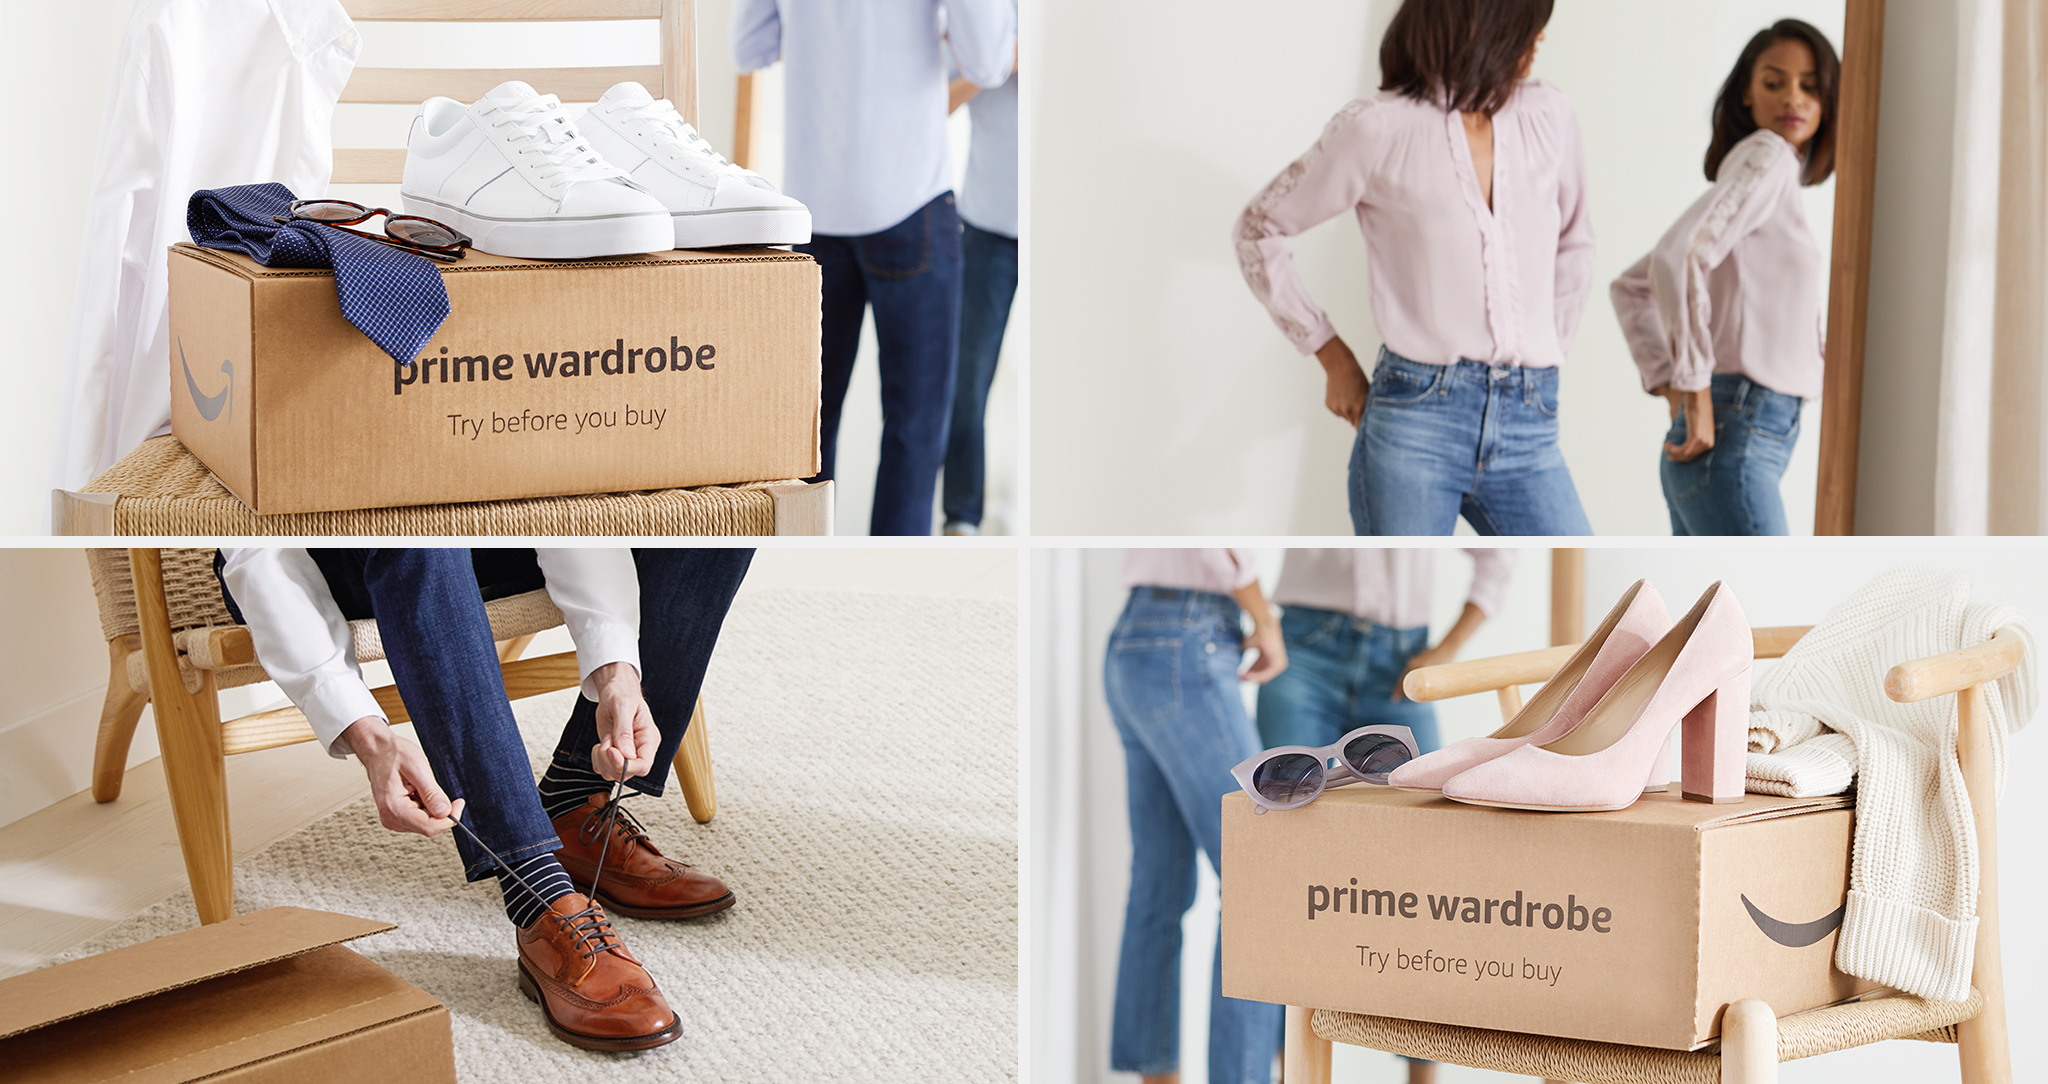 Amazoncom Learn More About Prime Wardrobe Clothing Shoes Jewelry - Free invoice service best kids clothing stores online